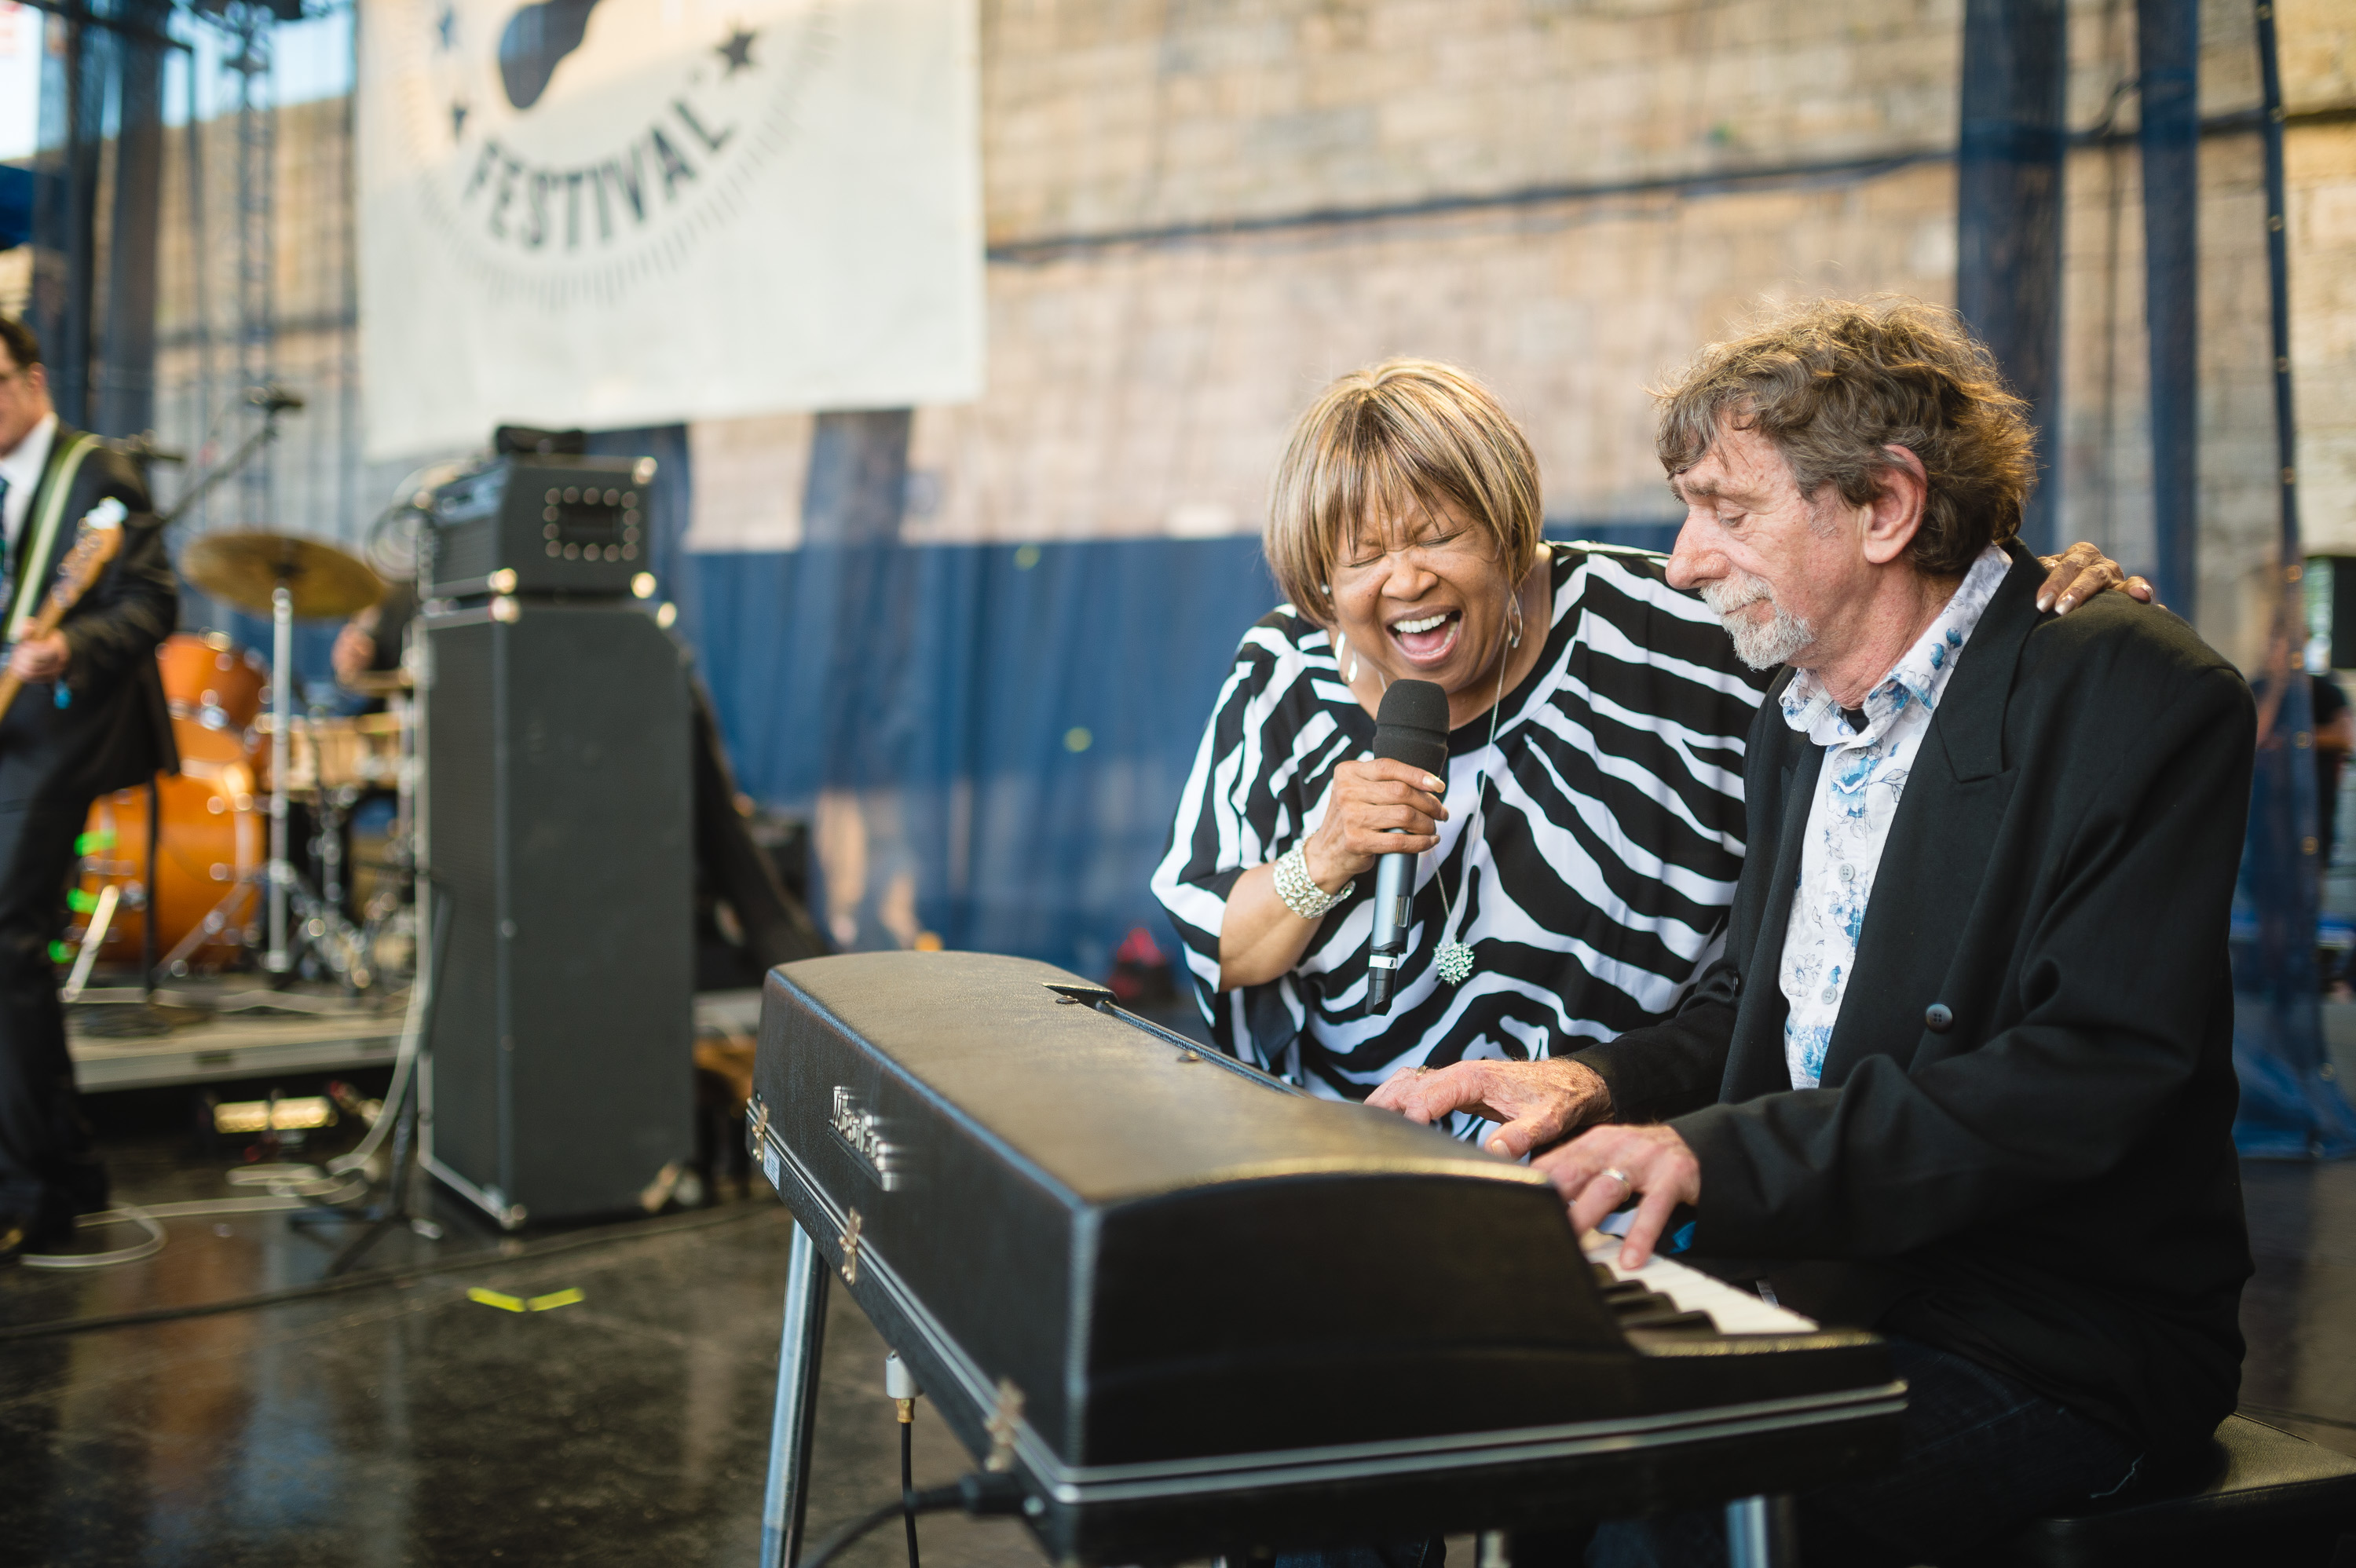 Mavis Staples performs at the 2014 Newport Folk Fest-7